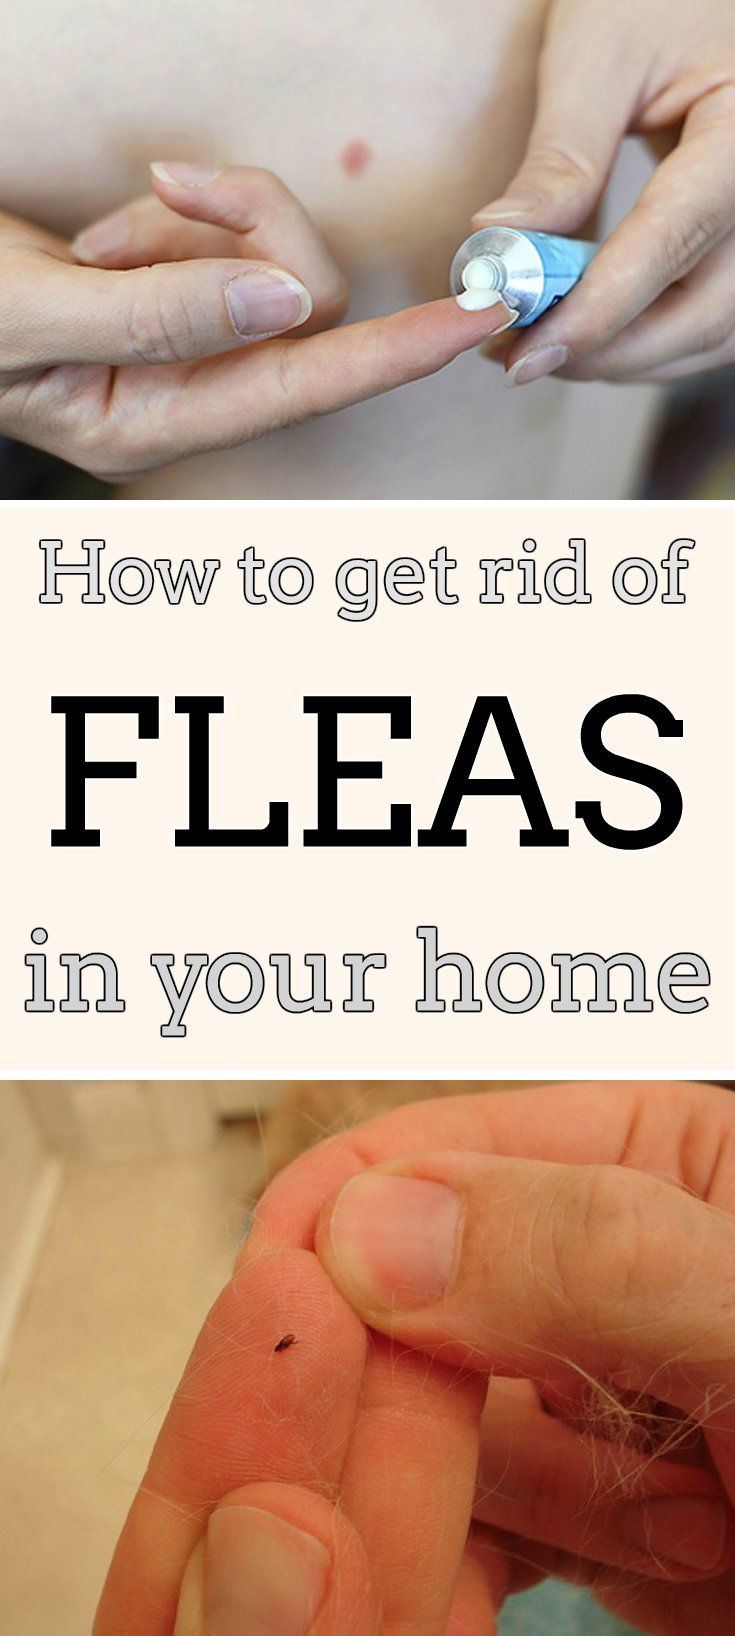 how to get rid of fleas in your home pests home remedies for fleas. Black Bedroom Furniture Sets. Home Design Ideas